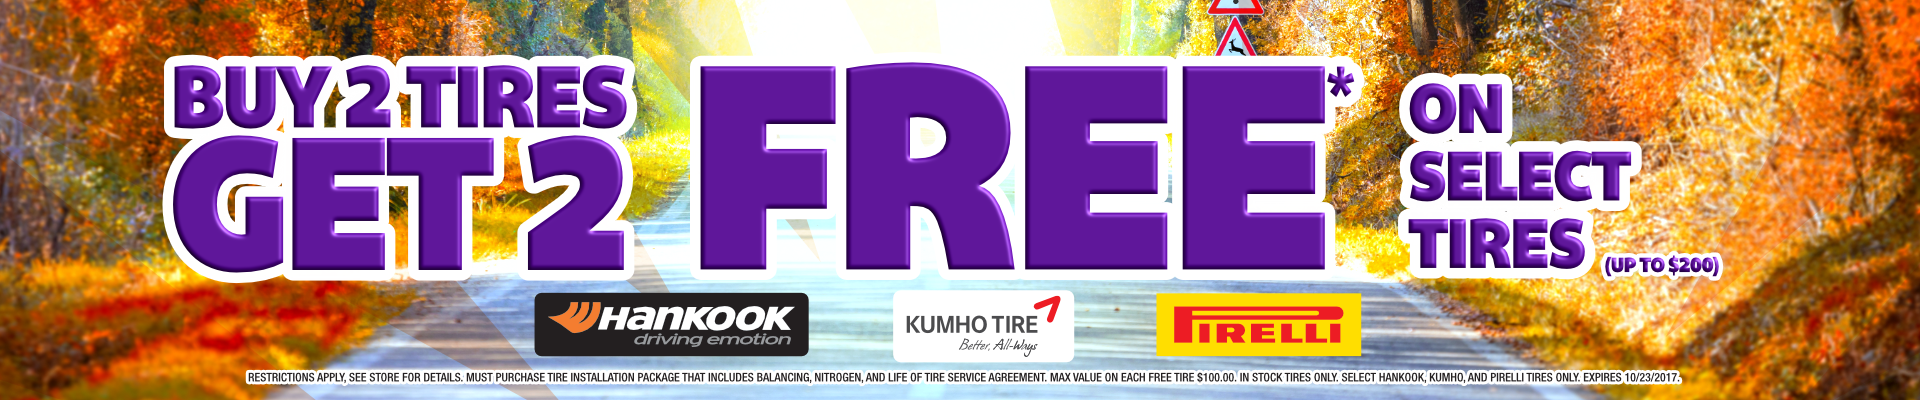 Buy 2 Get 2 Tires Free at Discount Tire Centers